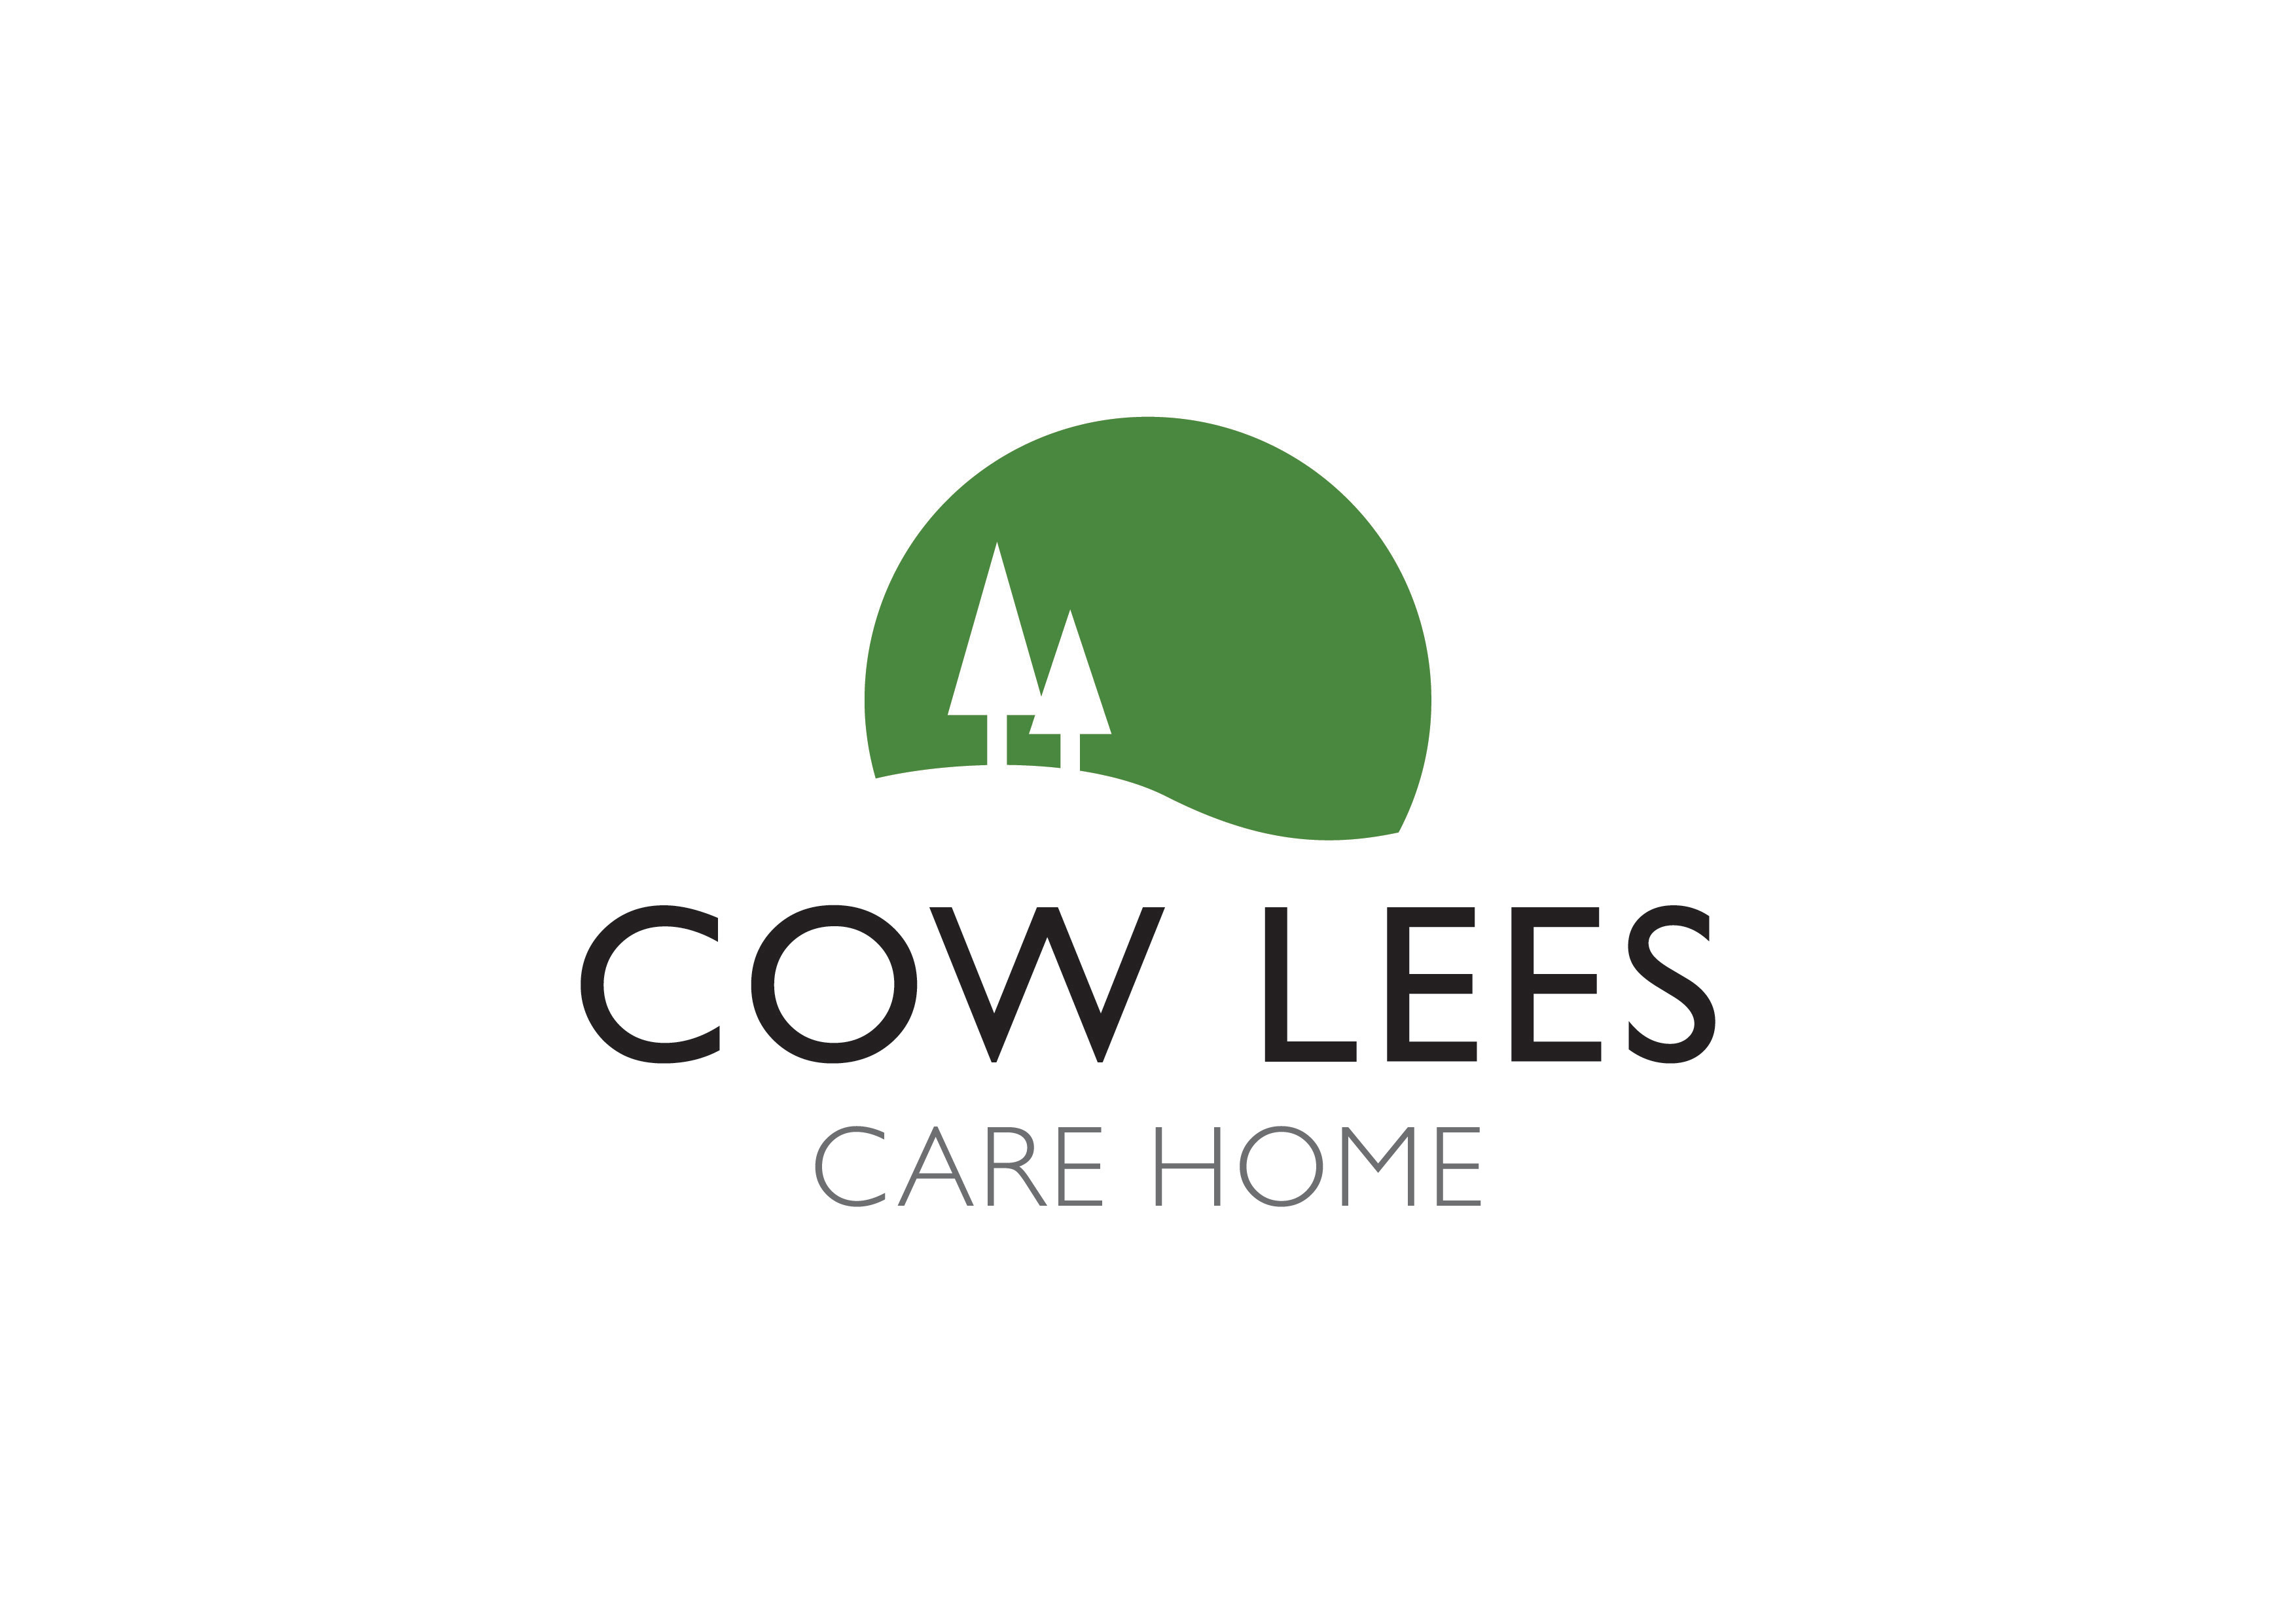 Cow Lees Care Home Corporate Identity